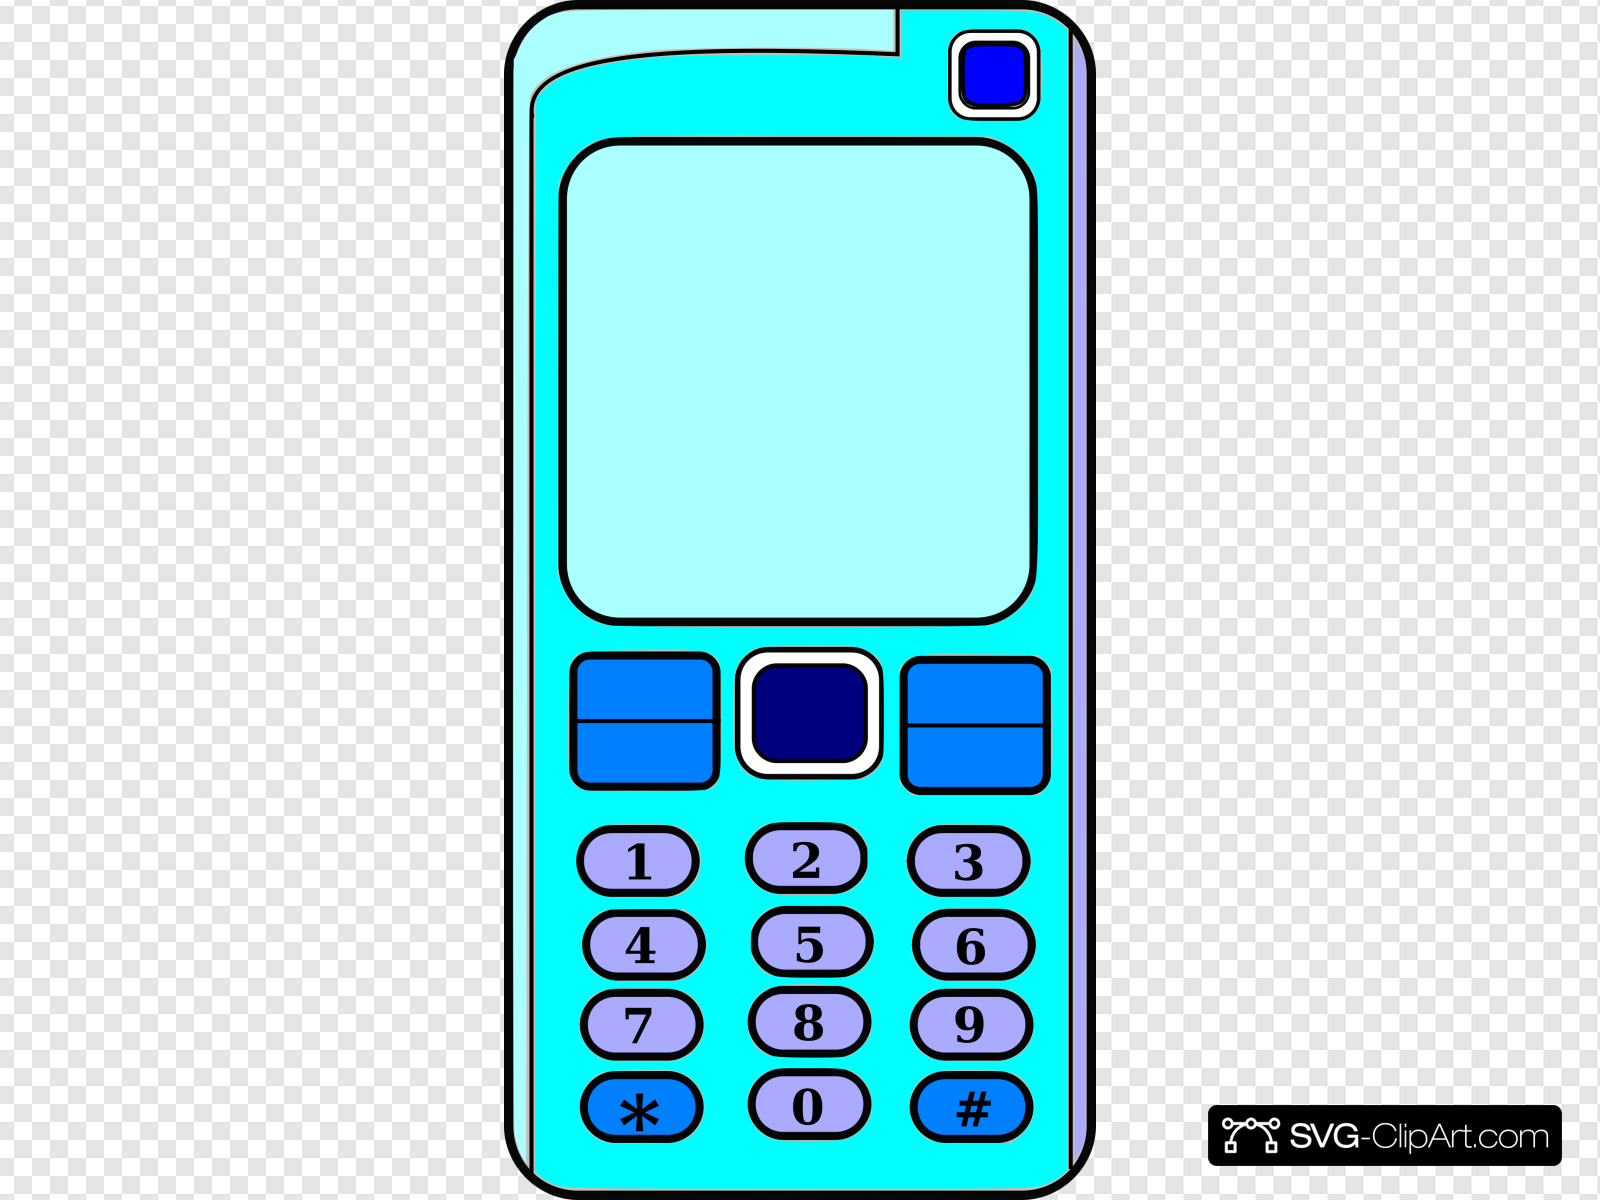 Mobile Phone With Blank Screen (blue) Clip art, Icon and SVG.